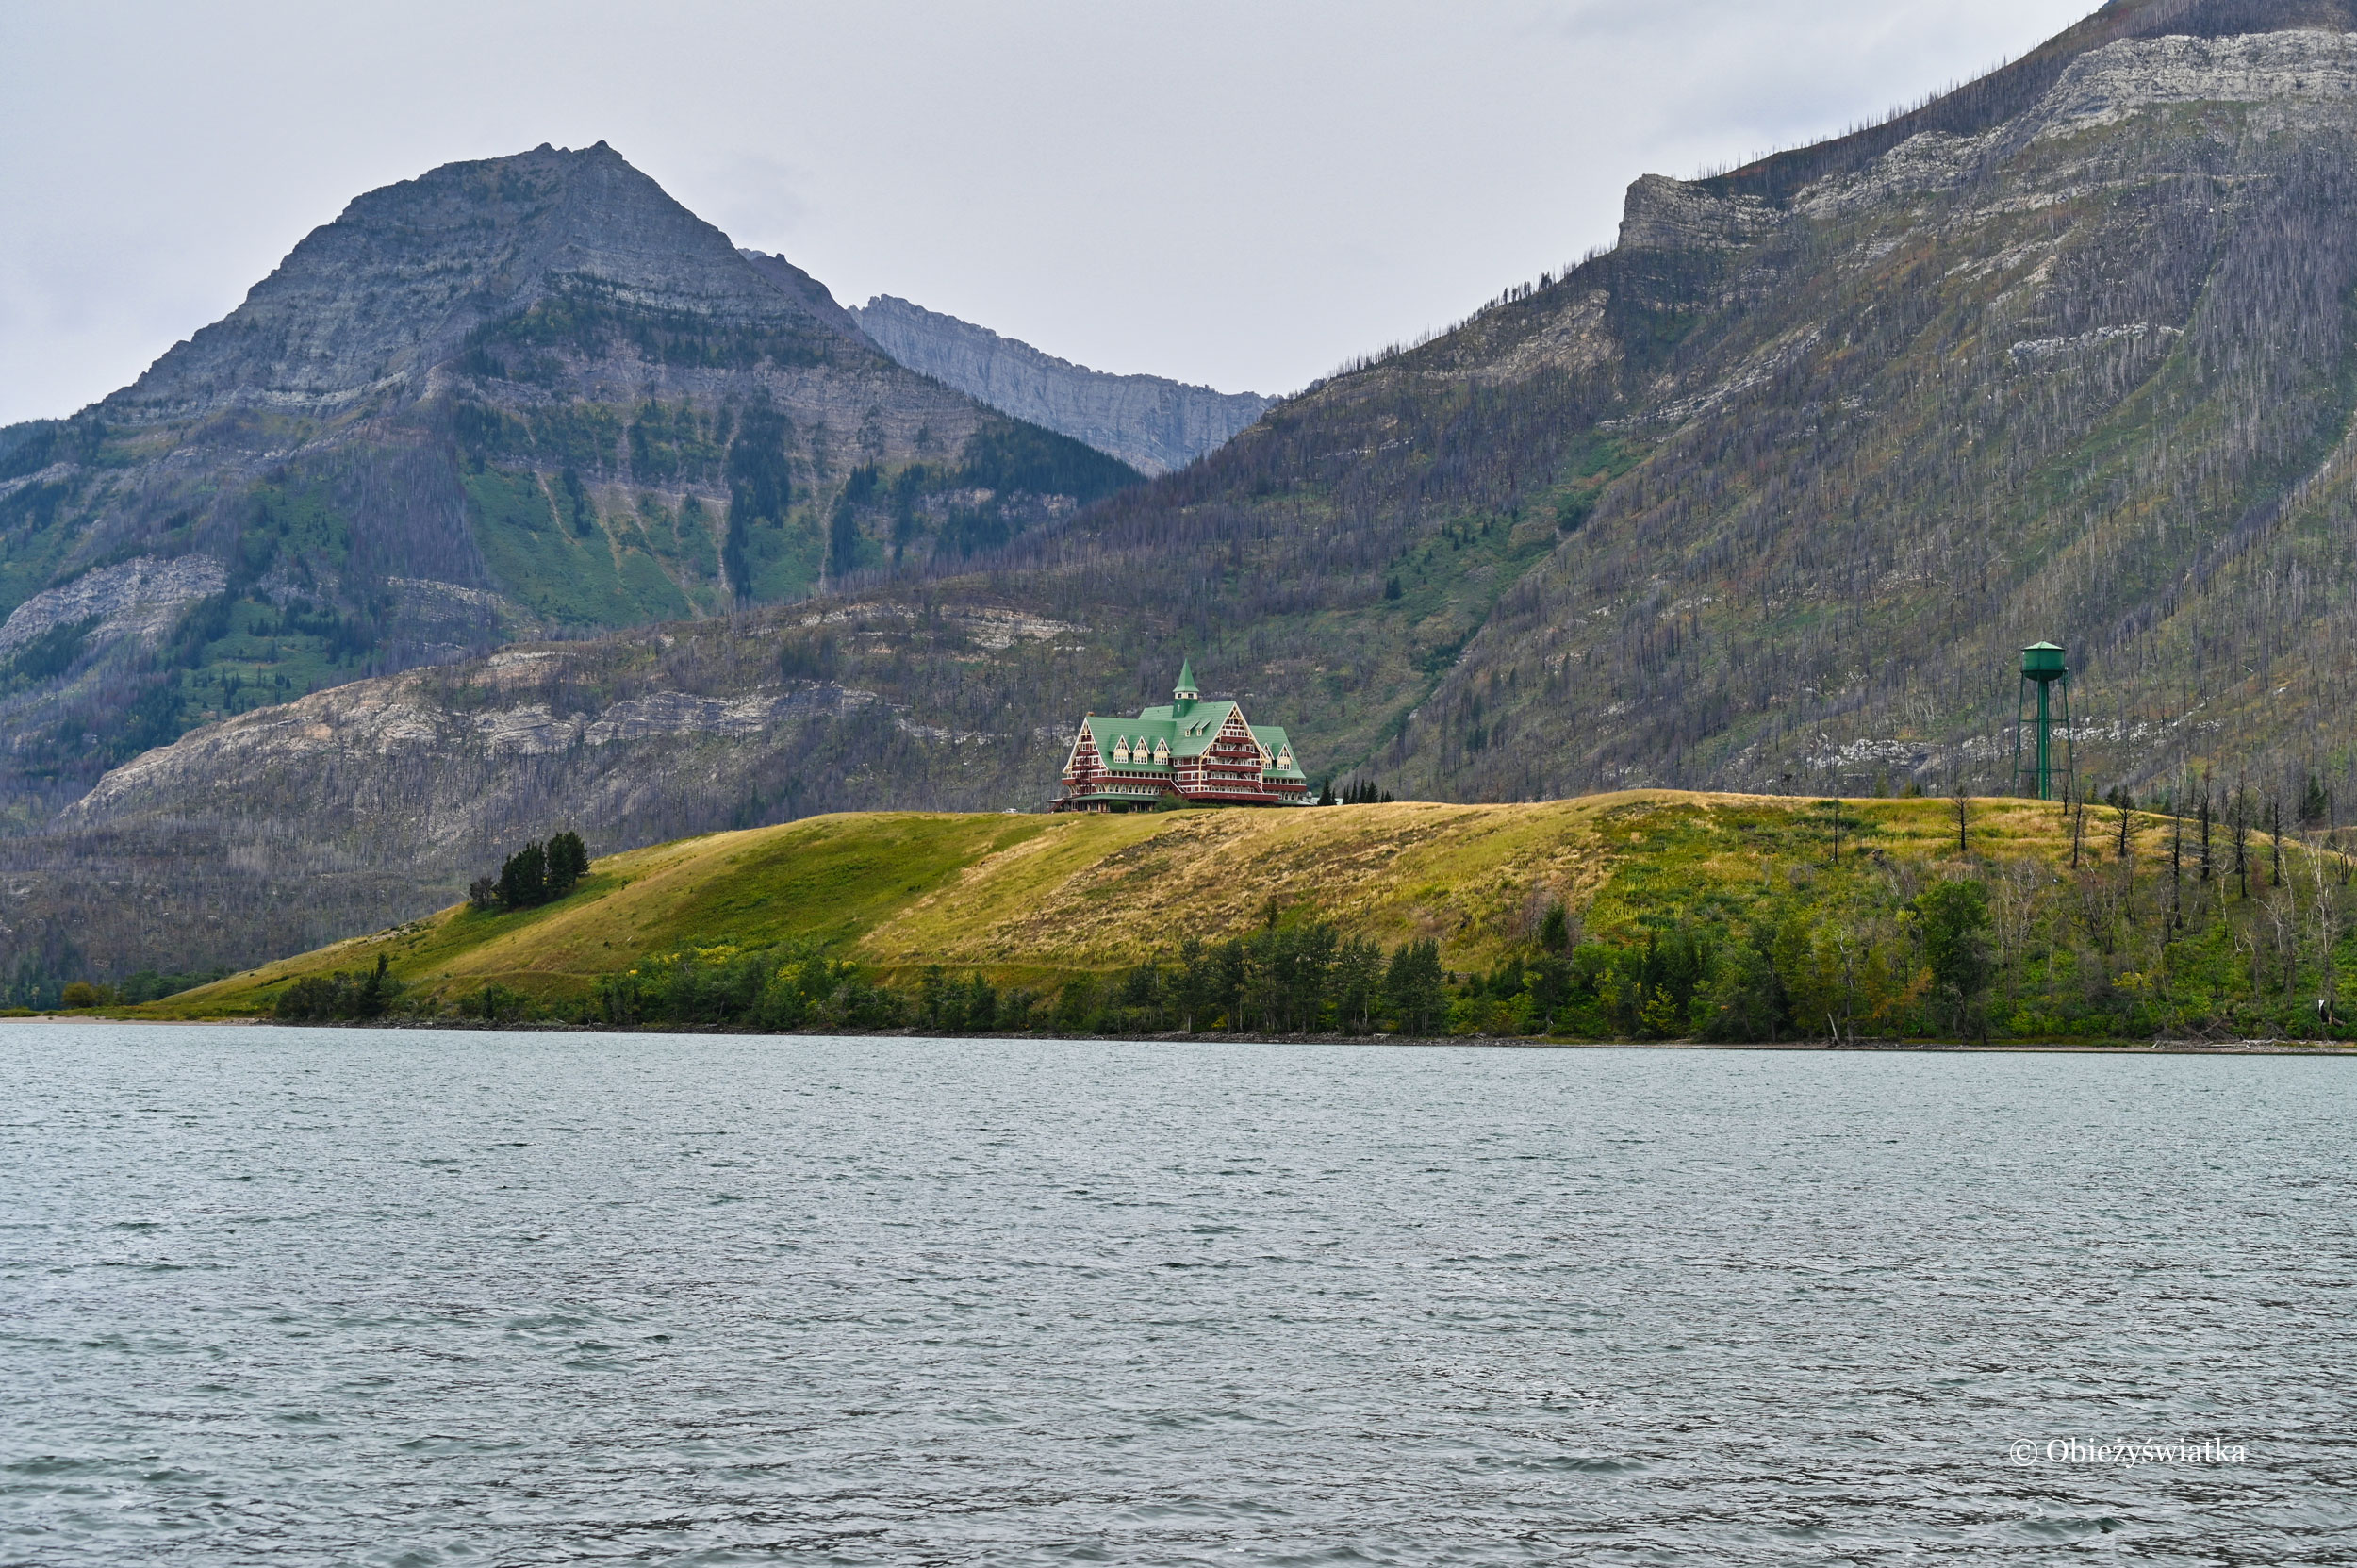 Hotel Prince of Wales na tle Mount Richards, Waterton Lakes National Park